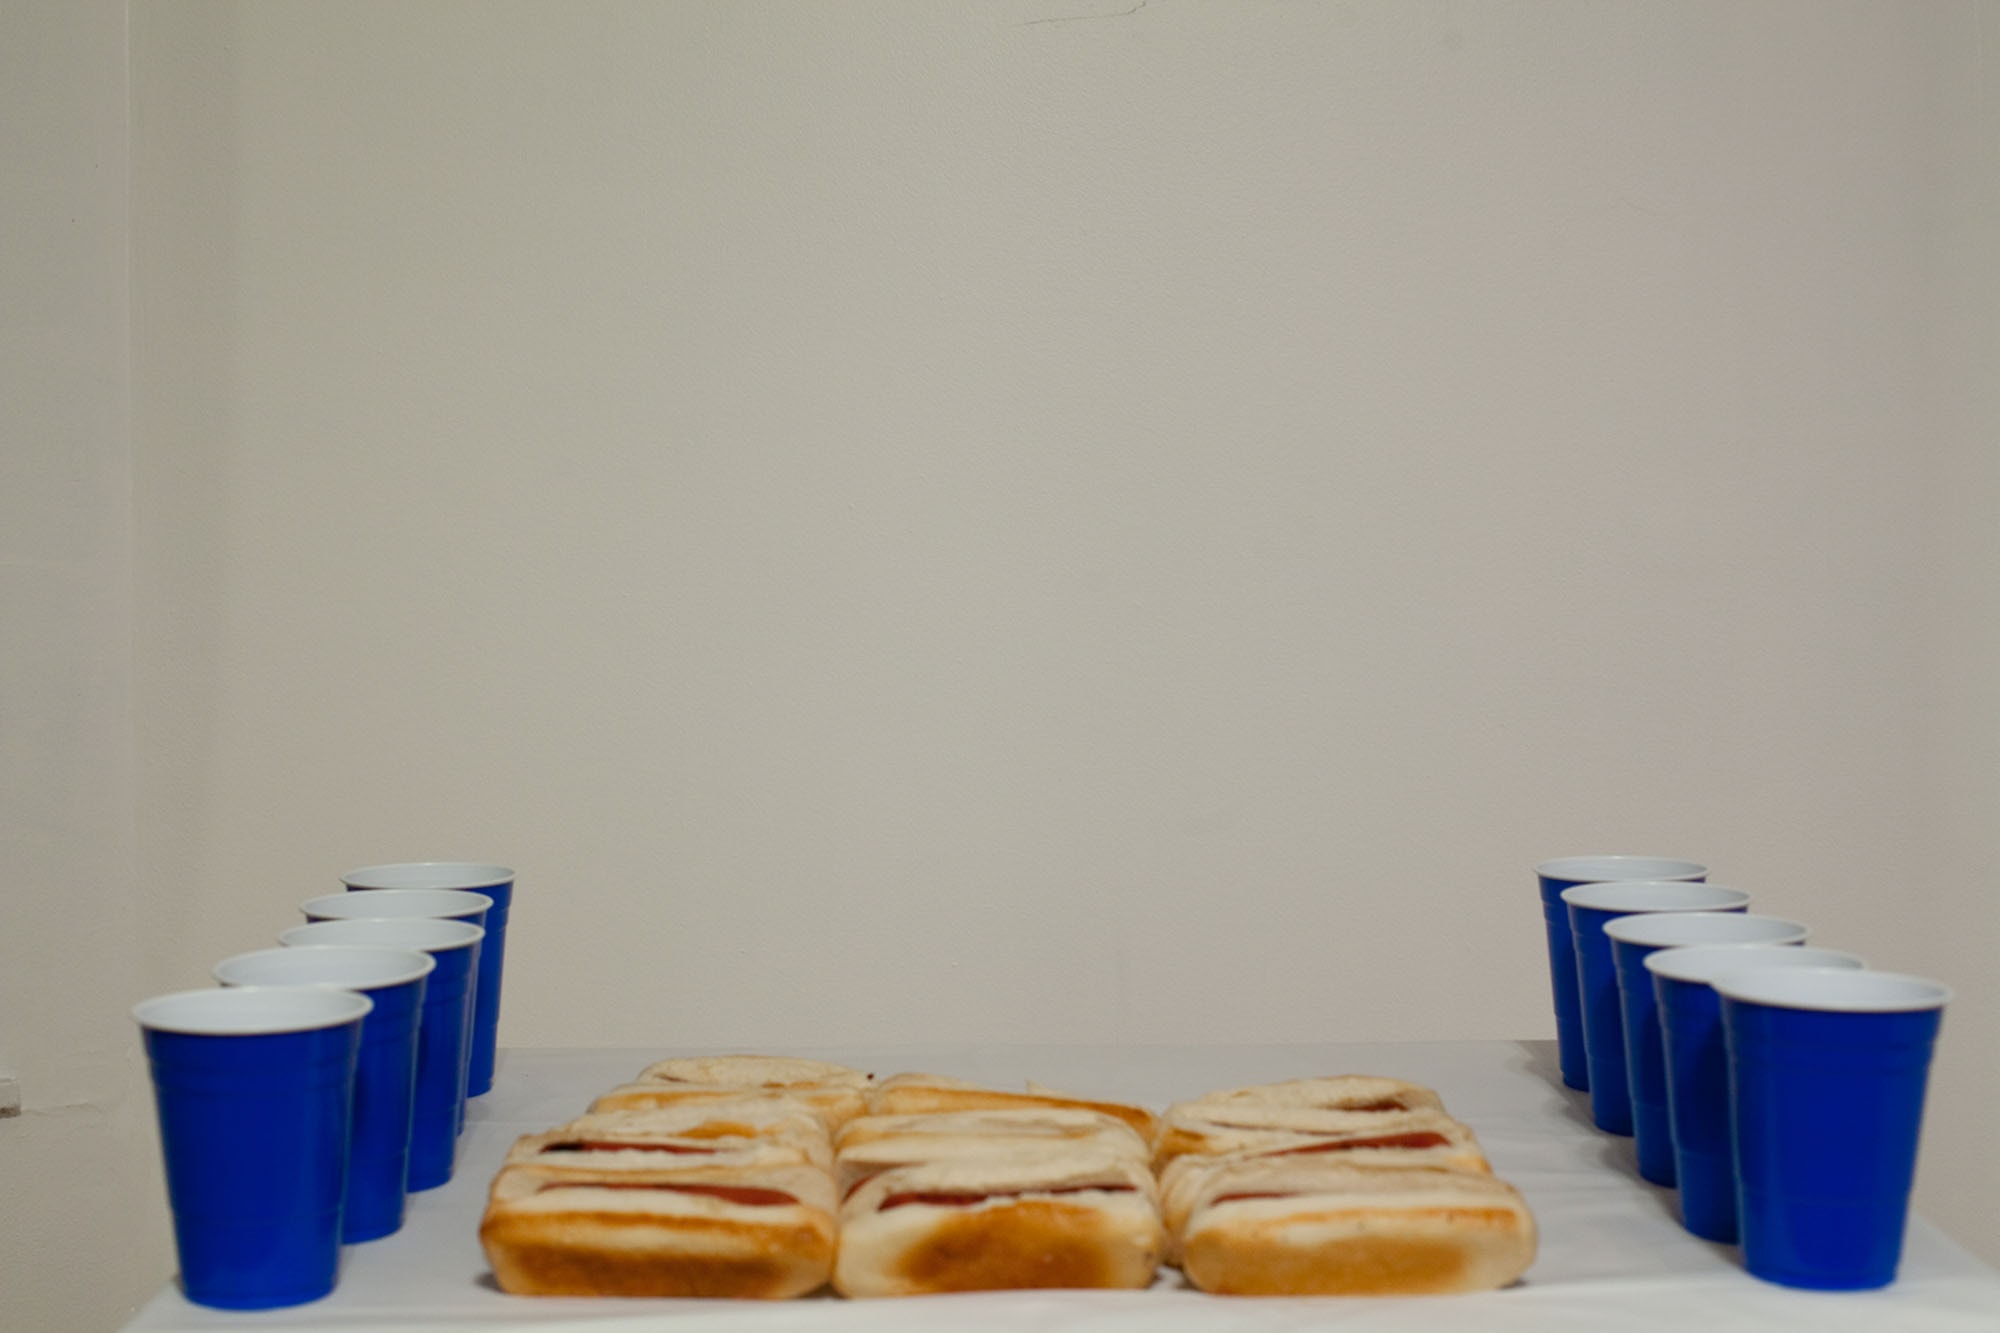 Advanced photo project: Self Portrait as Competitive Eater